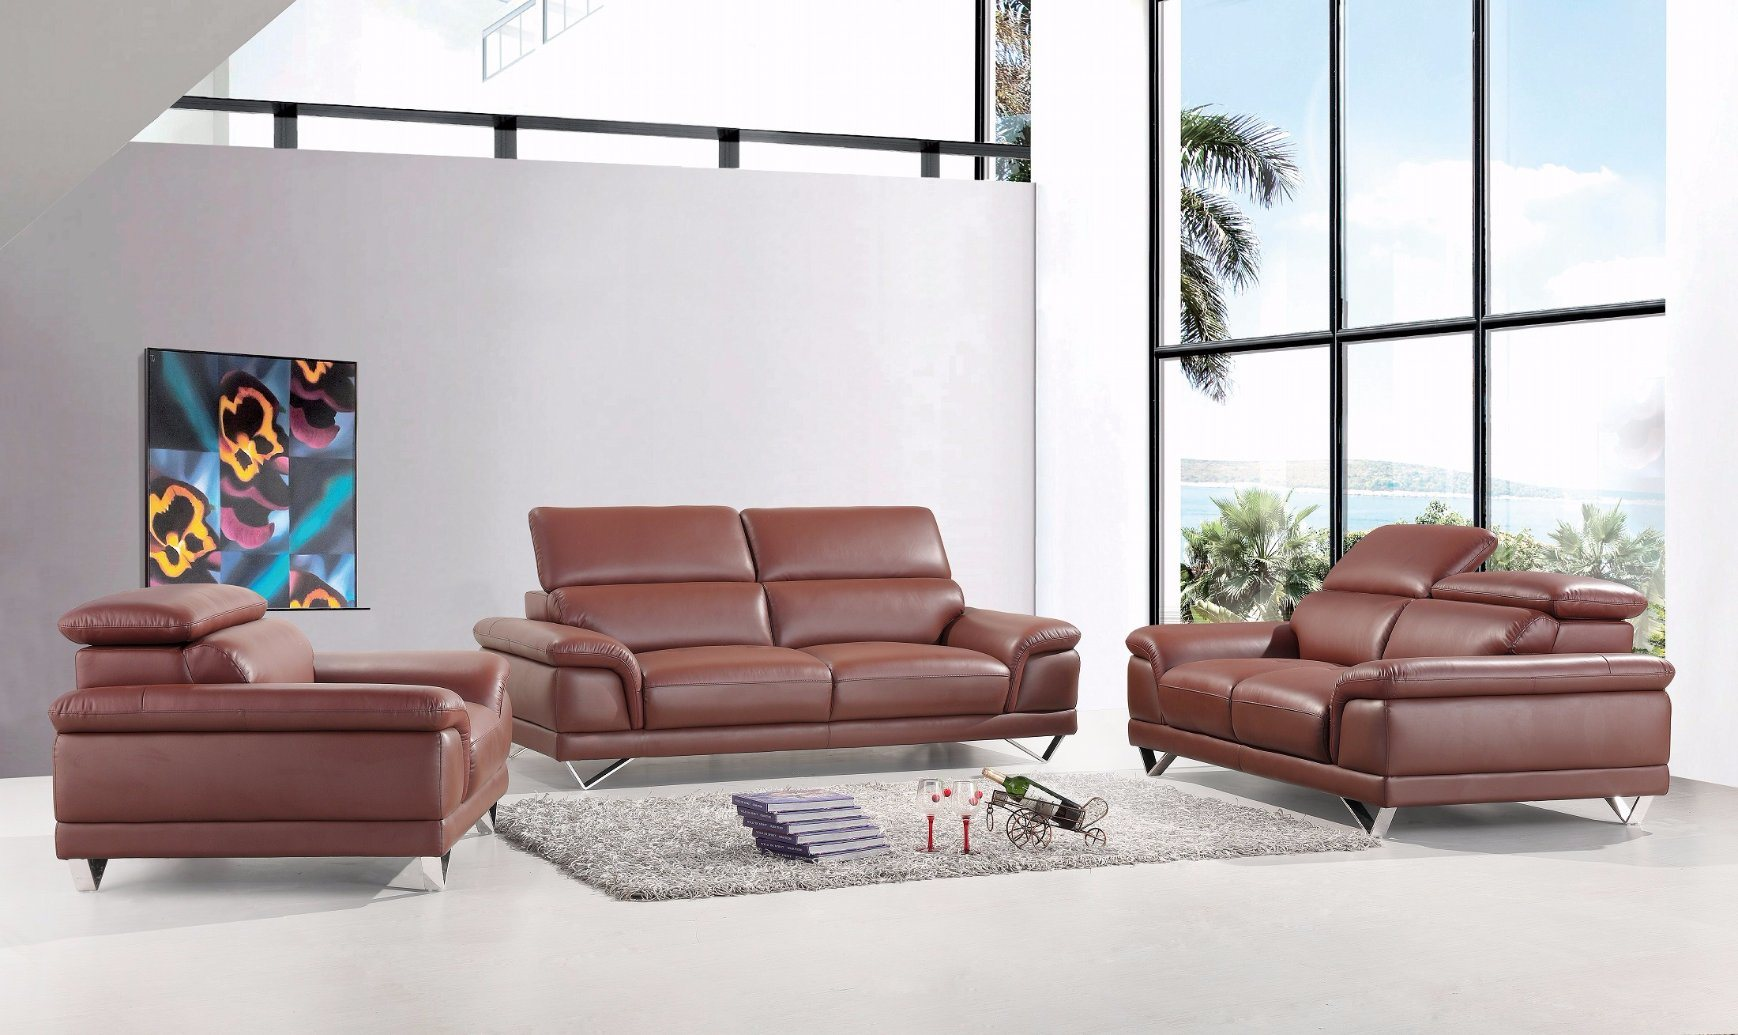 China European Style Living Room Furniture New Italian Leather Sofa Sbl 1718 1 2 3